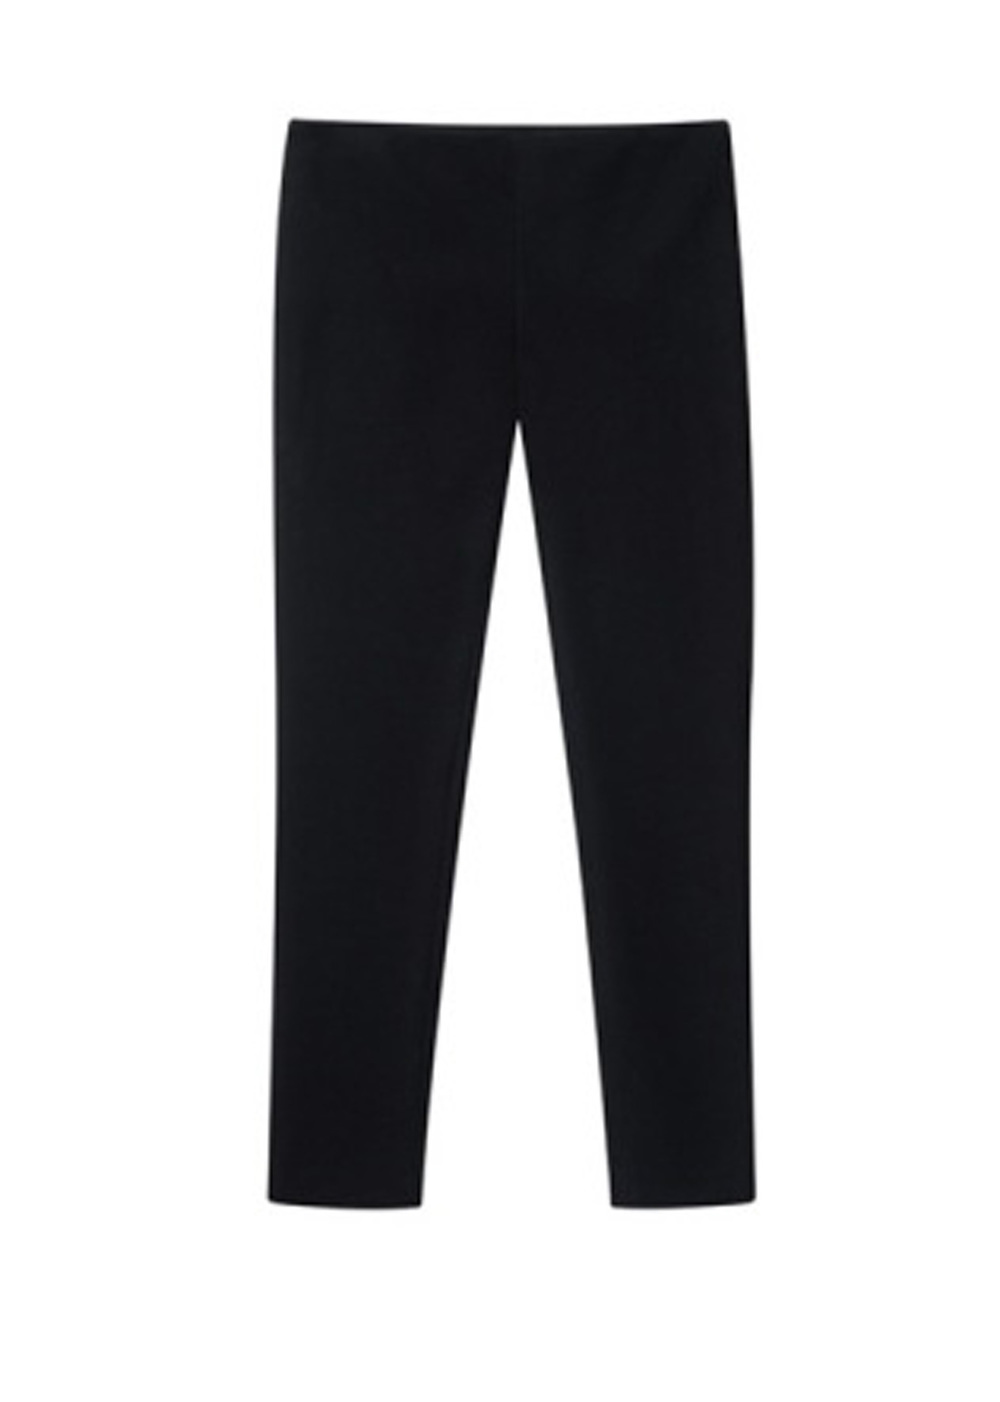 Pacer Pant C$235